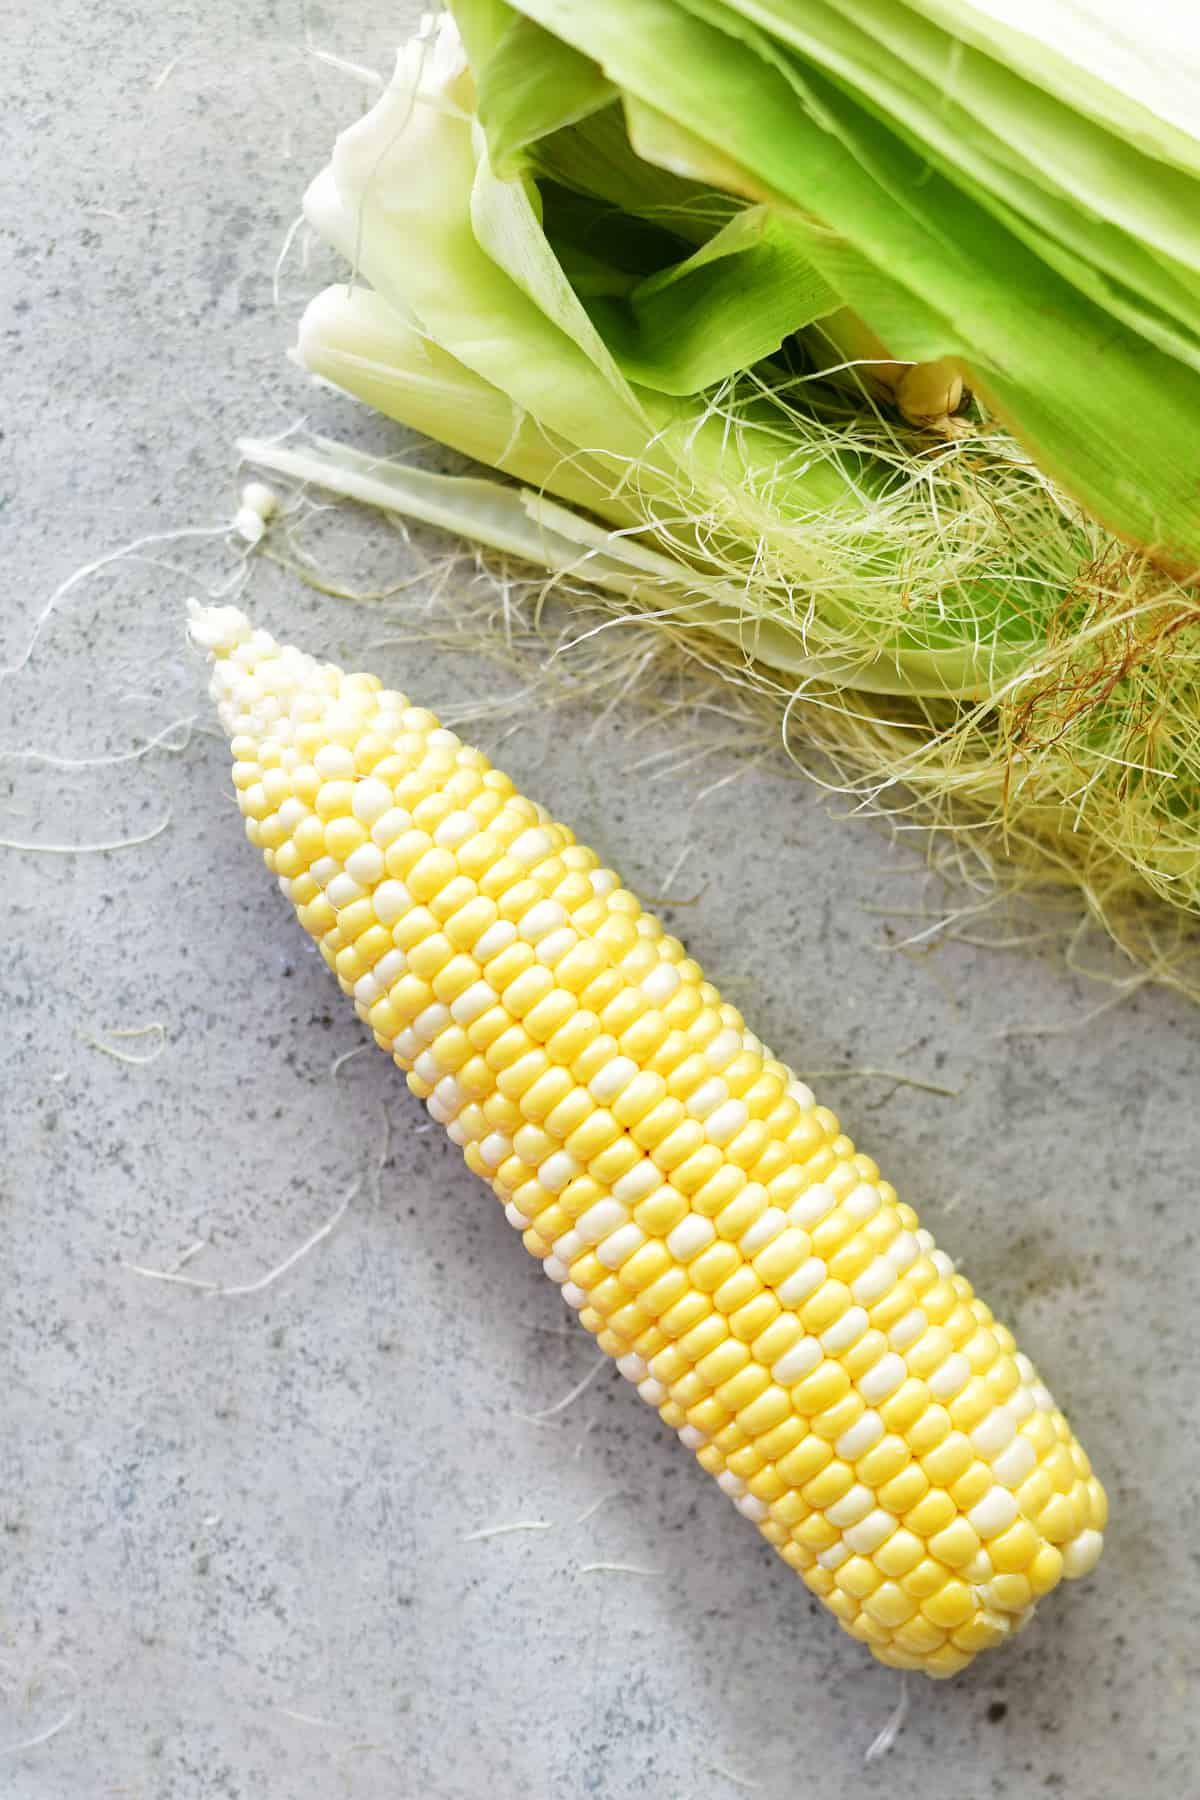 peeled corn on the cob